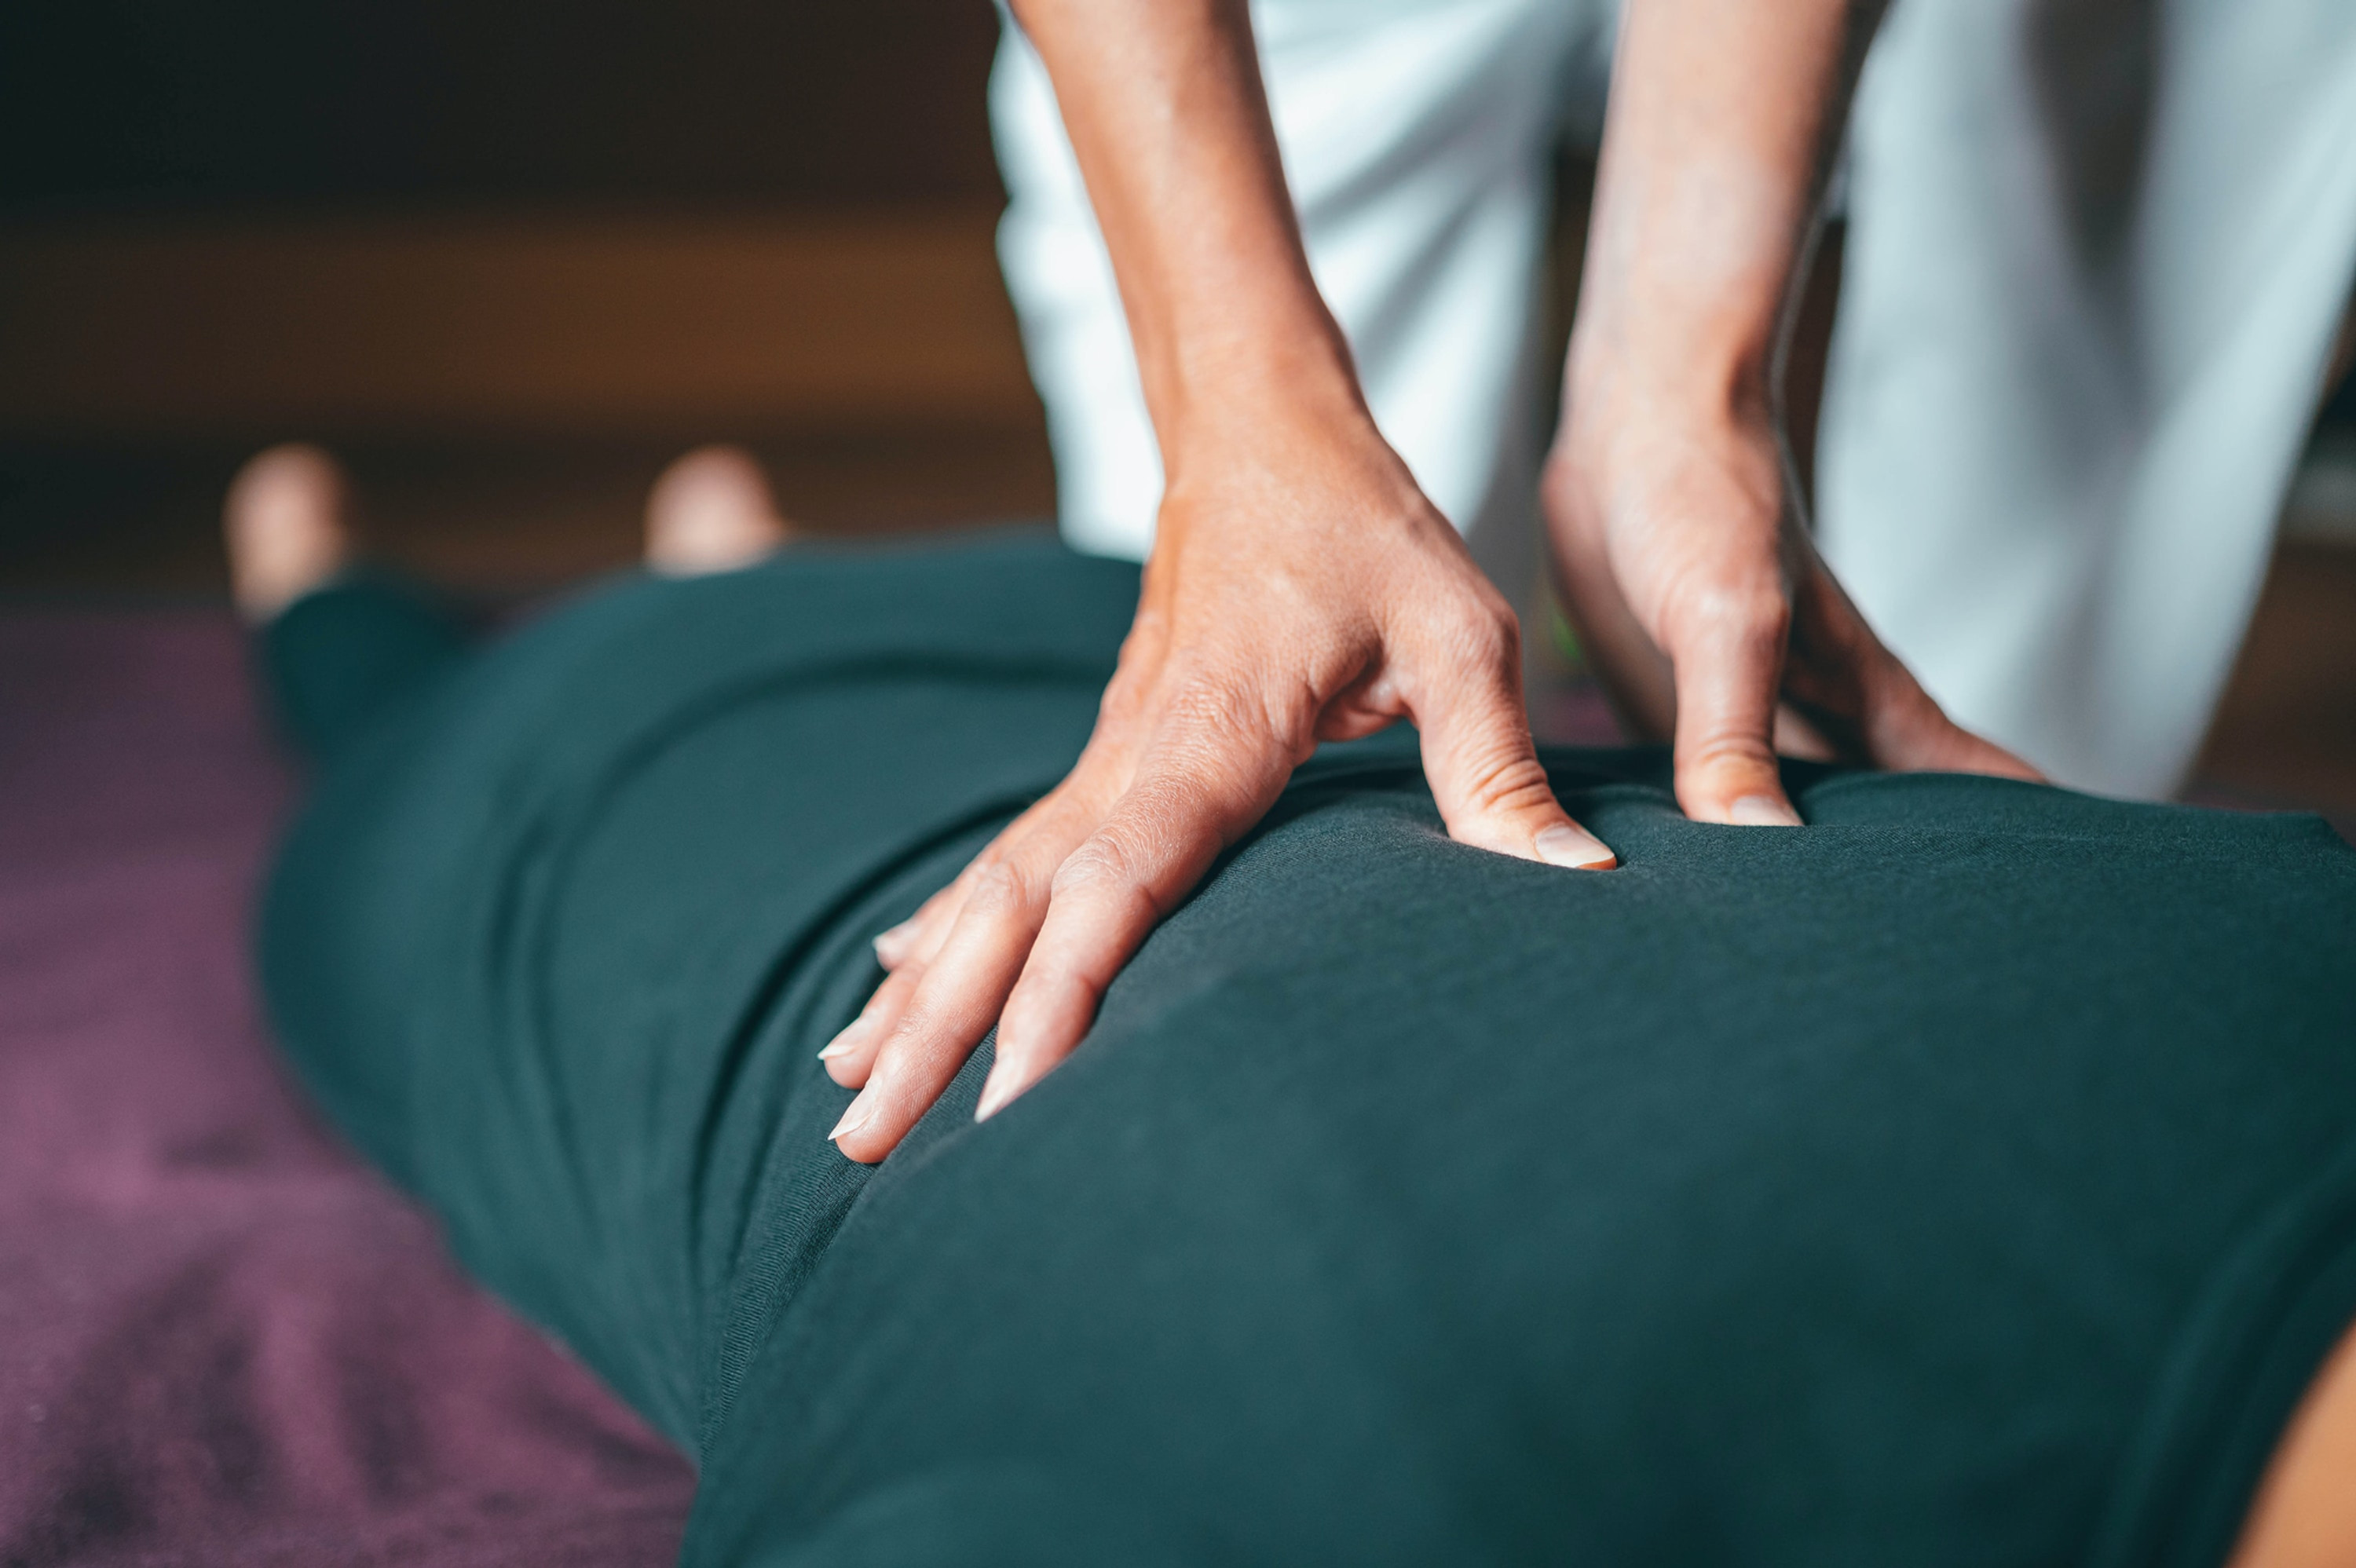 1 HOUR Manual Therapy / CHICAGO